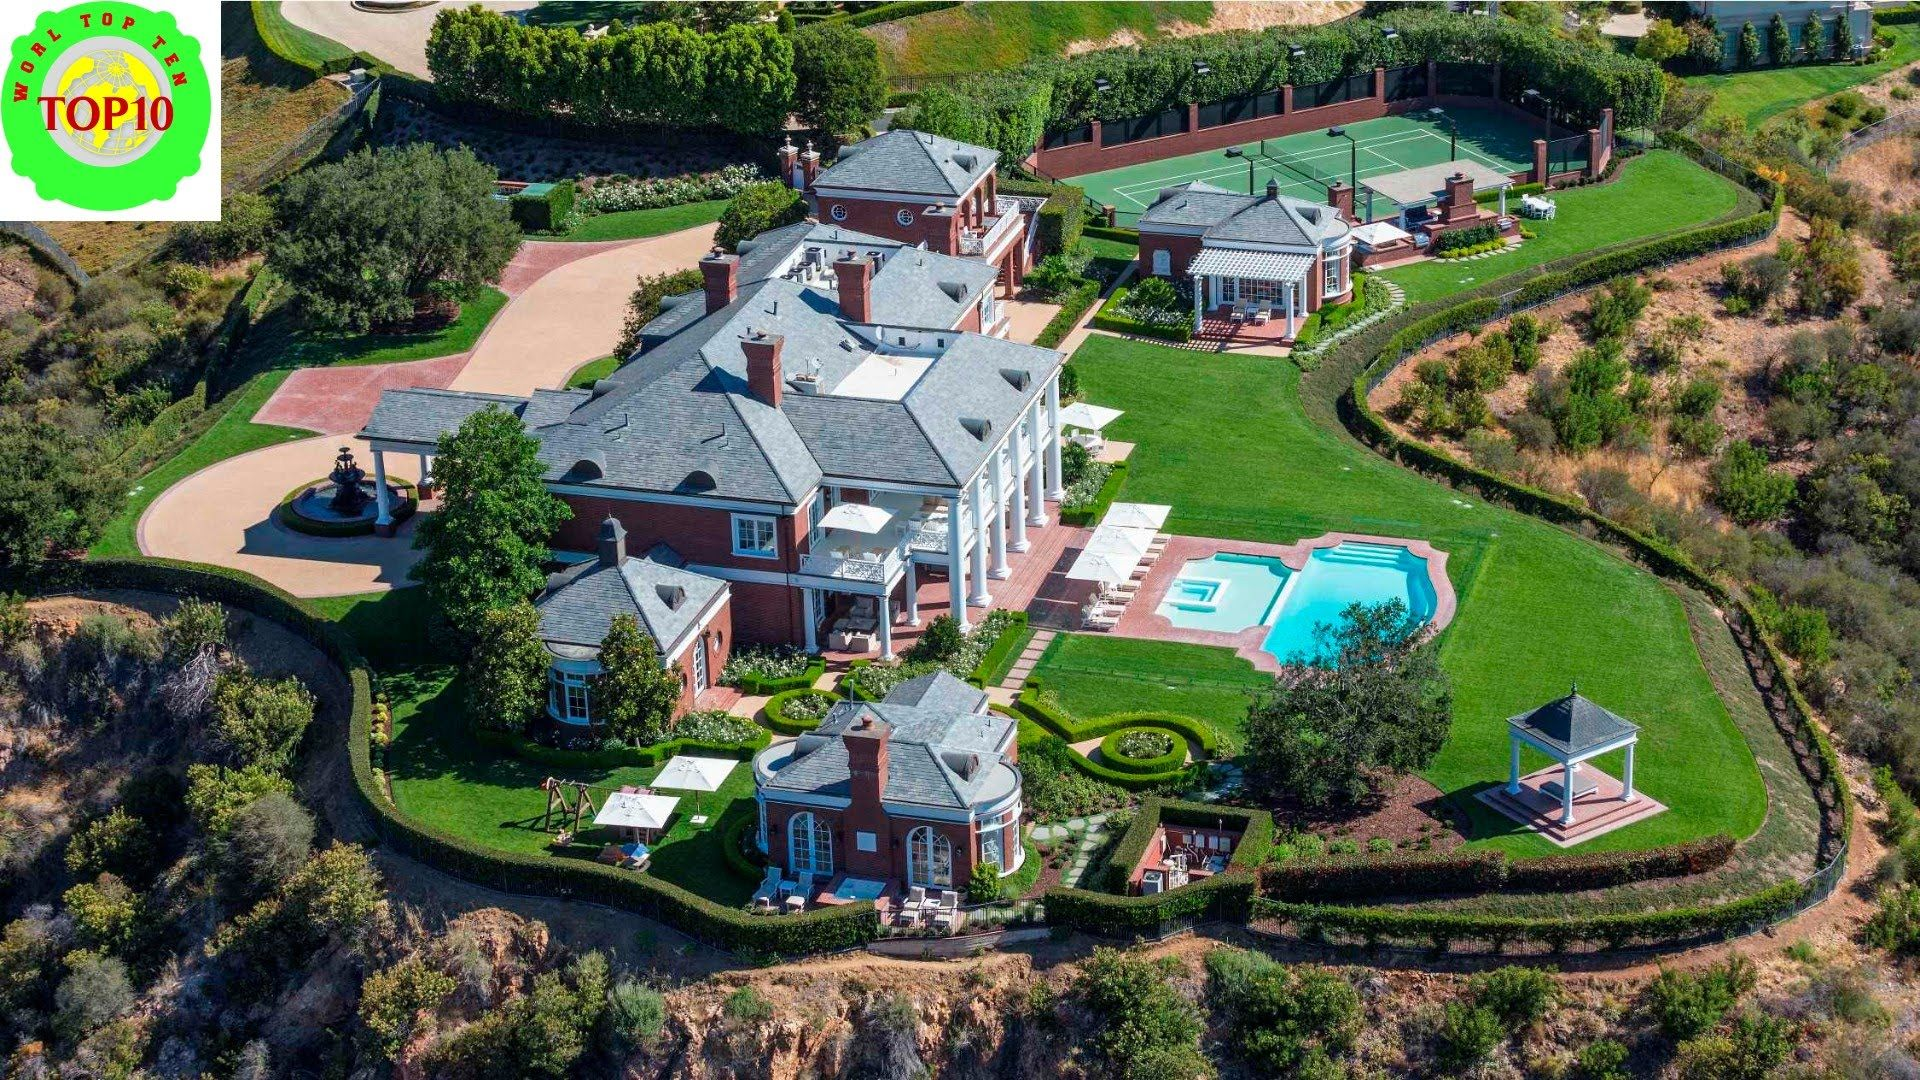 Top 50 Luxury Hotels In The World Mansions Celebrity Houses Mansions Luxury